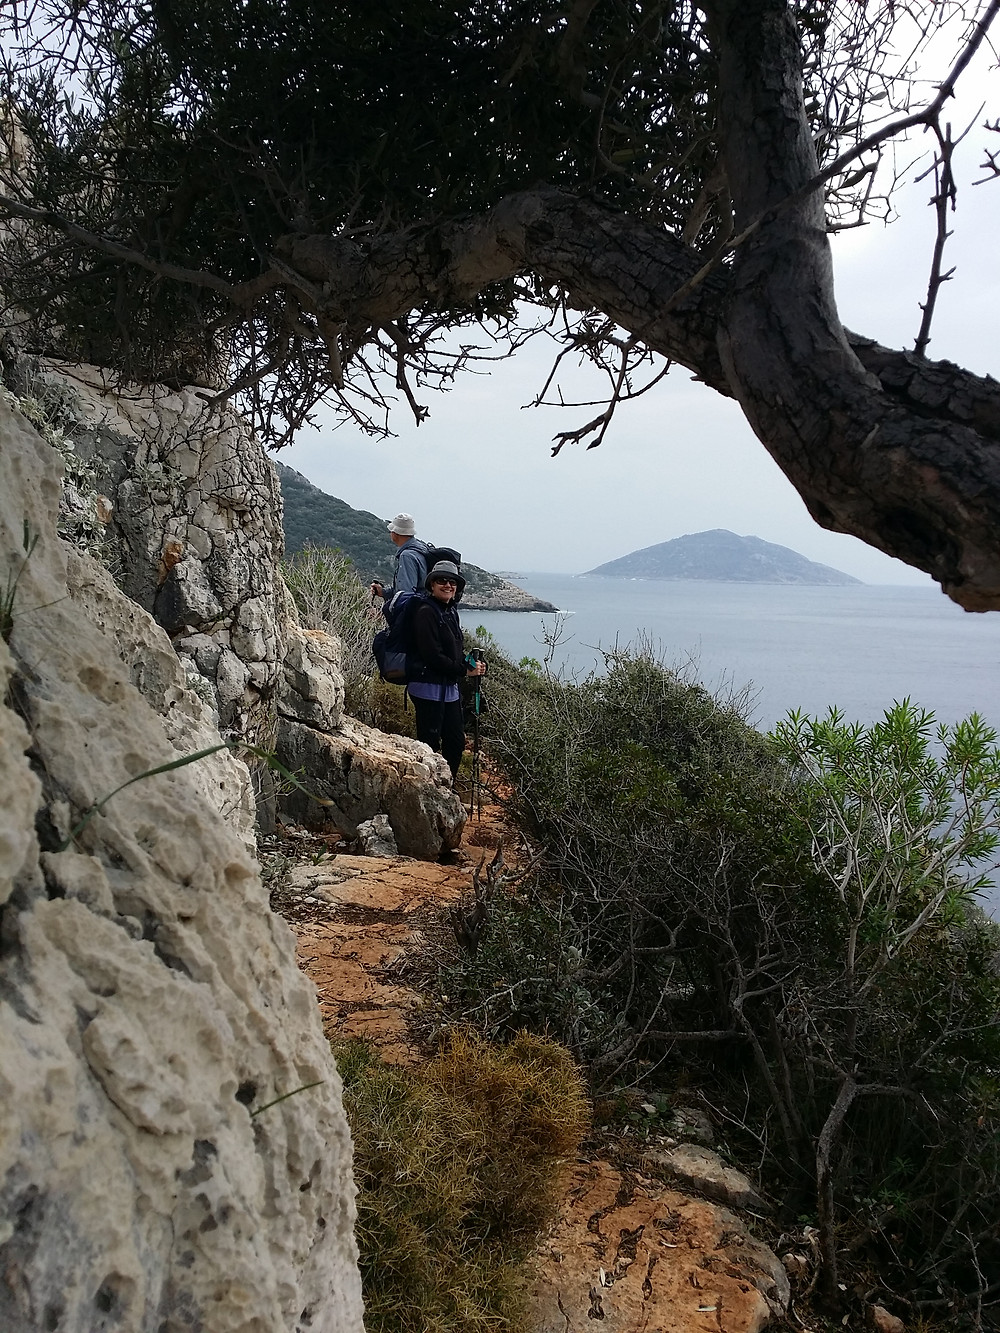 Just before Coban Plaji on the Lycian way